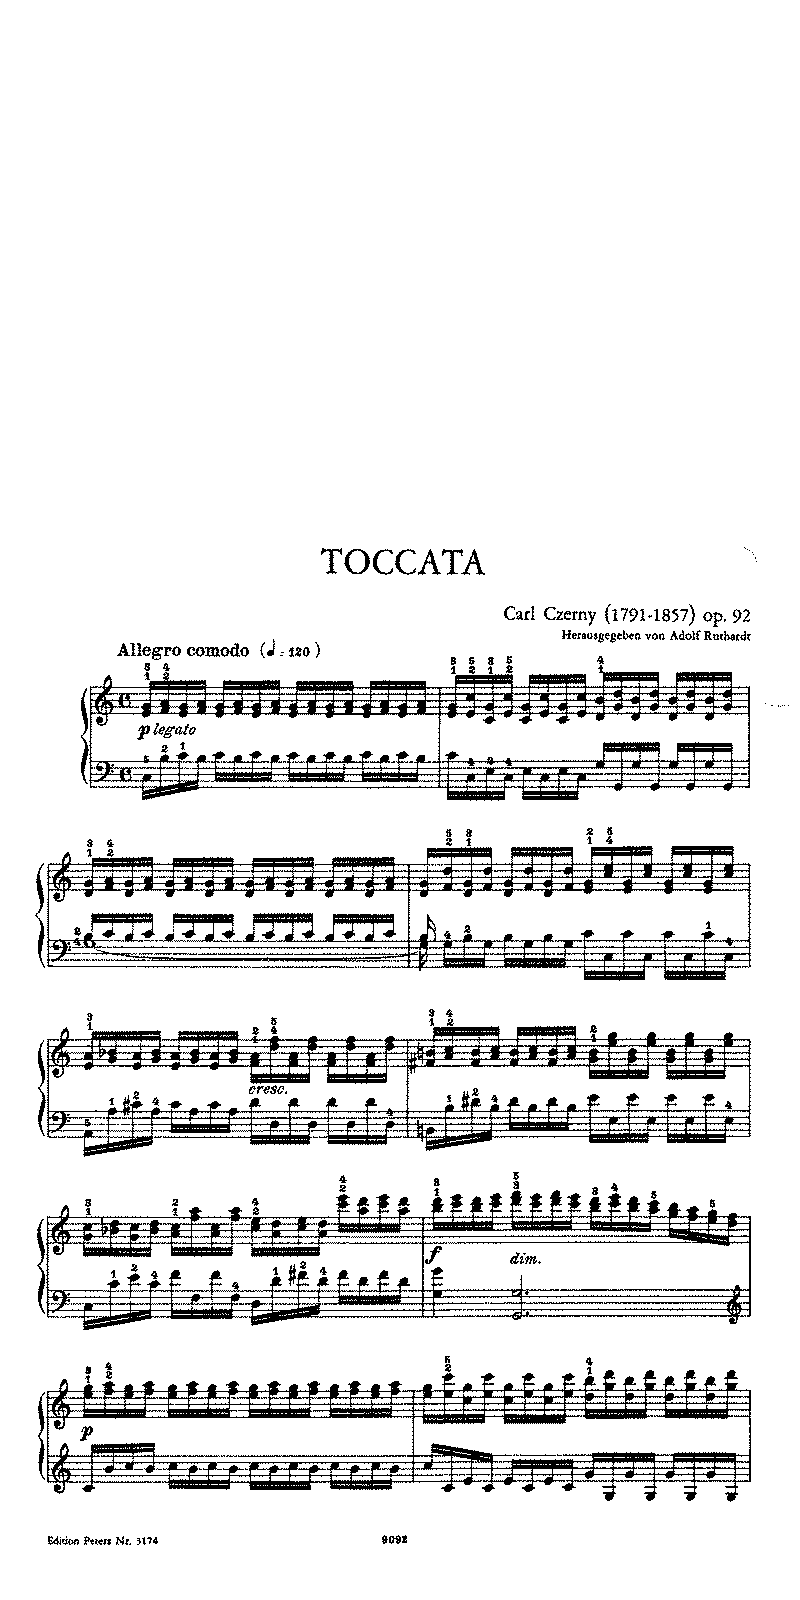 PMLP26169-Czerny - 92 Toccata op 92 - Edition Peters.pdf